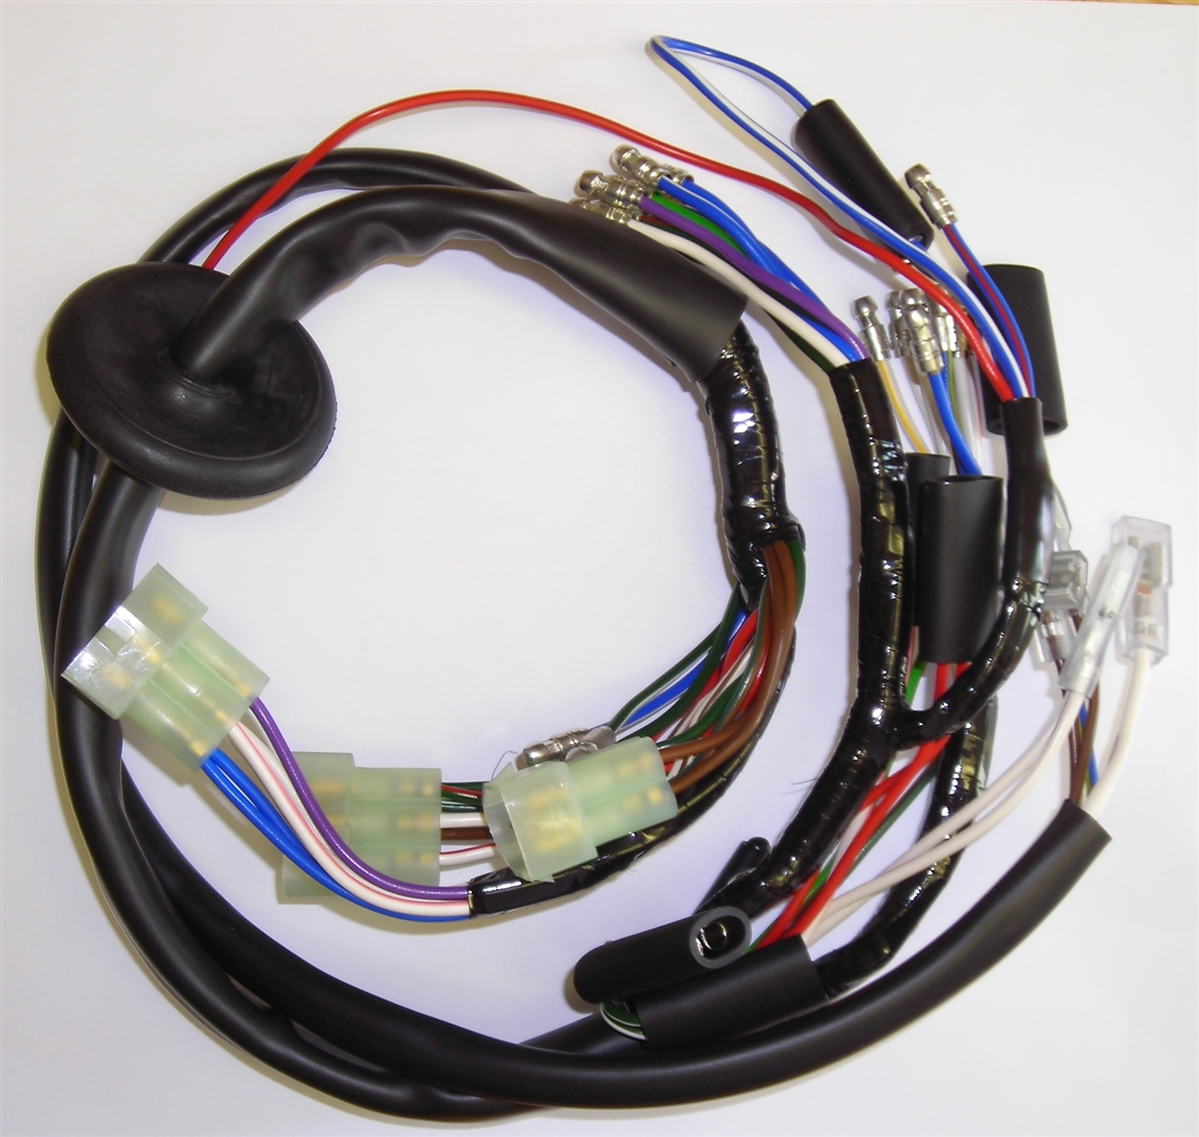 MC116PP 2?1374671892 commando 850cc mk3 motorcycle headlamp wiring harness headlamp wiring harness at bayanpartner.co